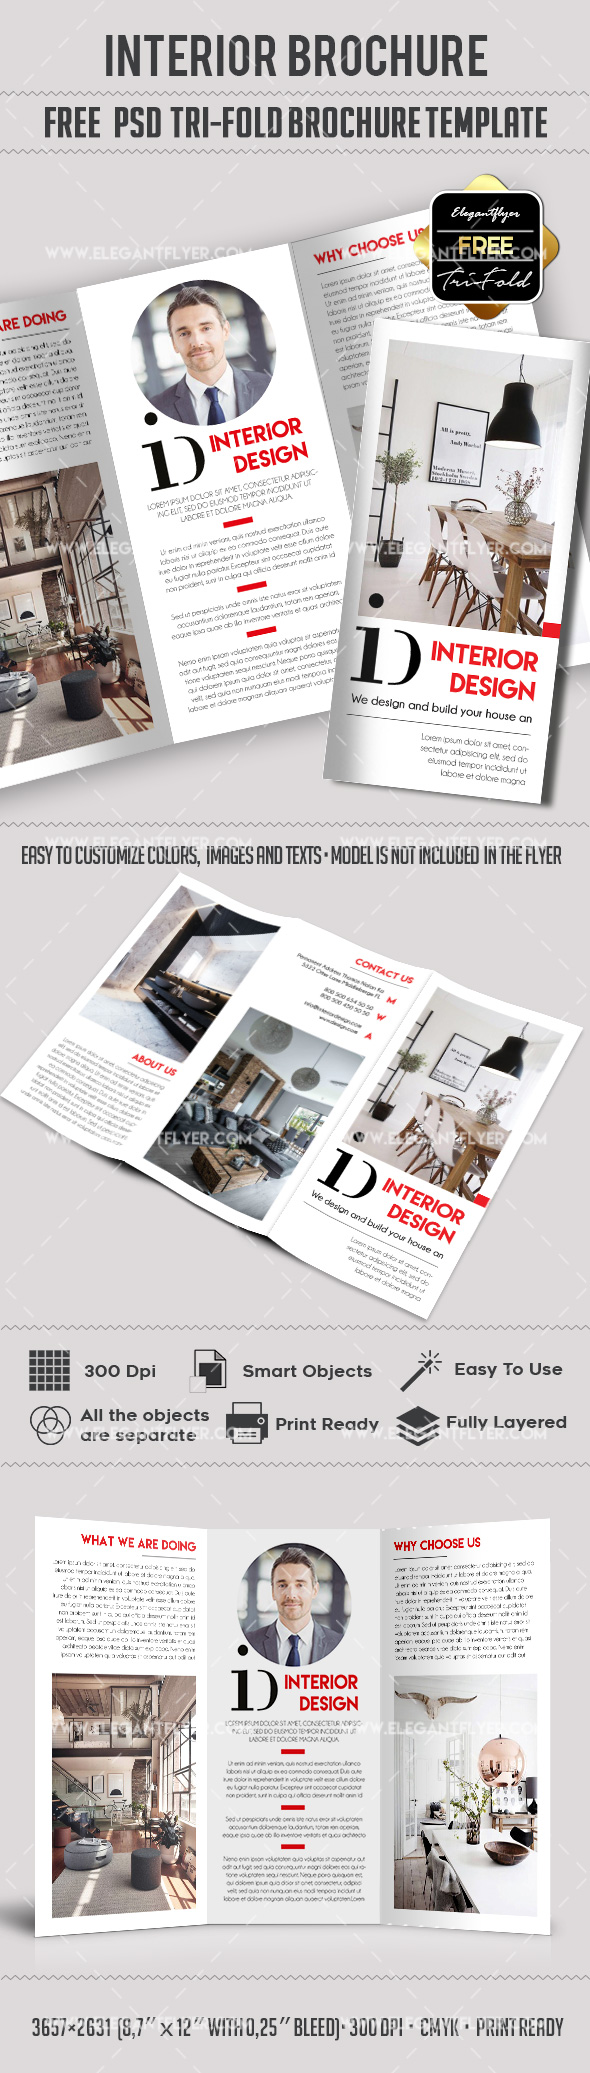 Interior design free tri fold brochure by elegantflyer for Tri fold brochure template psd